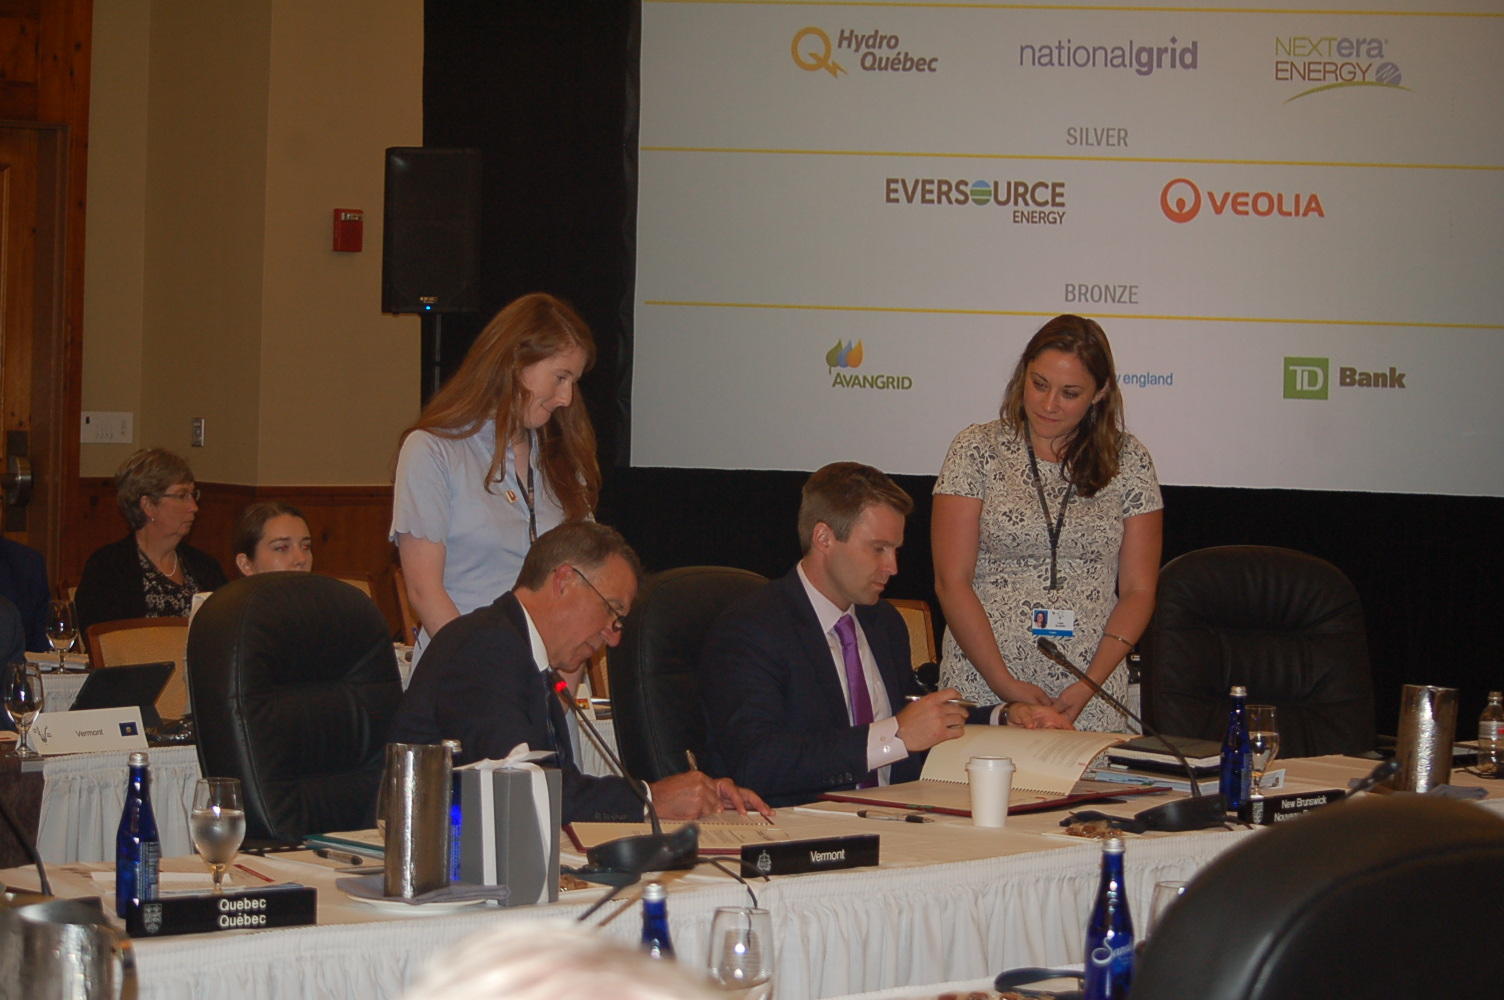 Vermont Gov. Phil Scott, left, and New Brunswick Premier Brian Gallant sign resolutions at Monday's annual conference of New England governors and eastern Canadian premiers. Gallant will host next year's meeting in St. John, New Brunswick. Photo by John Dillon for VPR